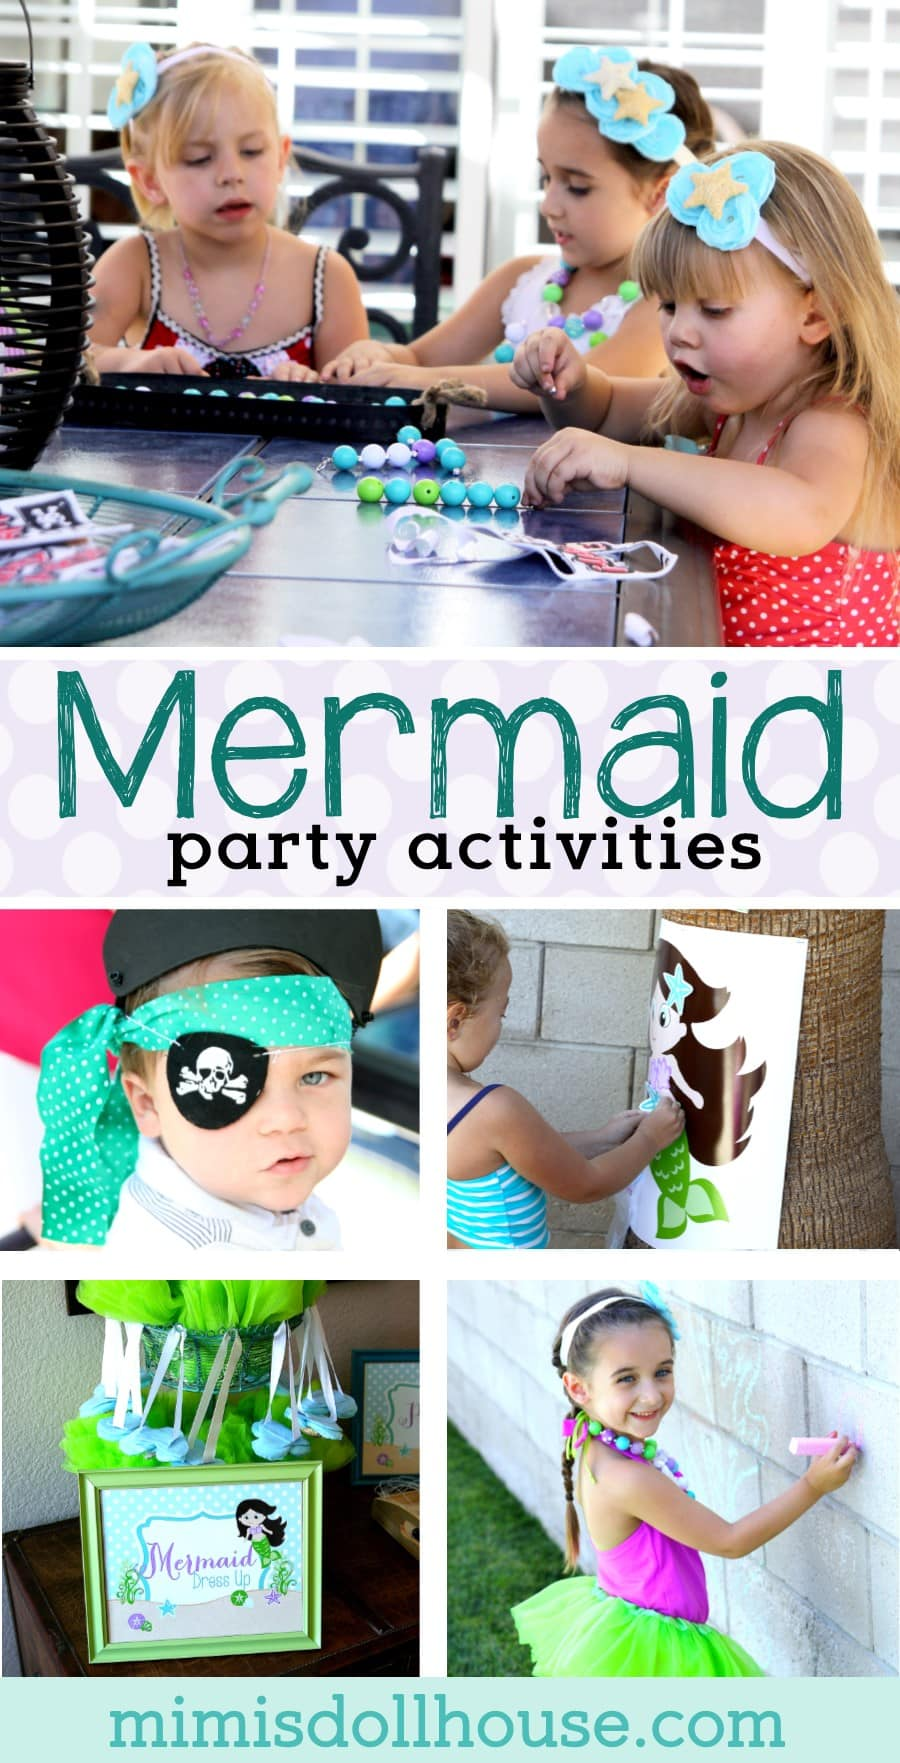 Mermaid Party: Under the Sea Mermaid Party Activities. Today I'm sharing the Mermaid Party Activities and Games from my recent Mermaid Party. Looking formermaid party ideas? Also check out thismermaid party, thisunder the sea birthday partyand theseunder the sea party ideas! #mermaid #partygames #party #parties #partyideas #ocean #underthesea